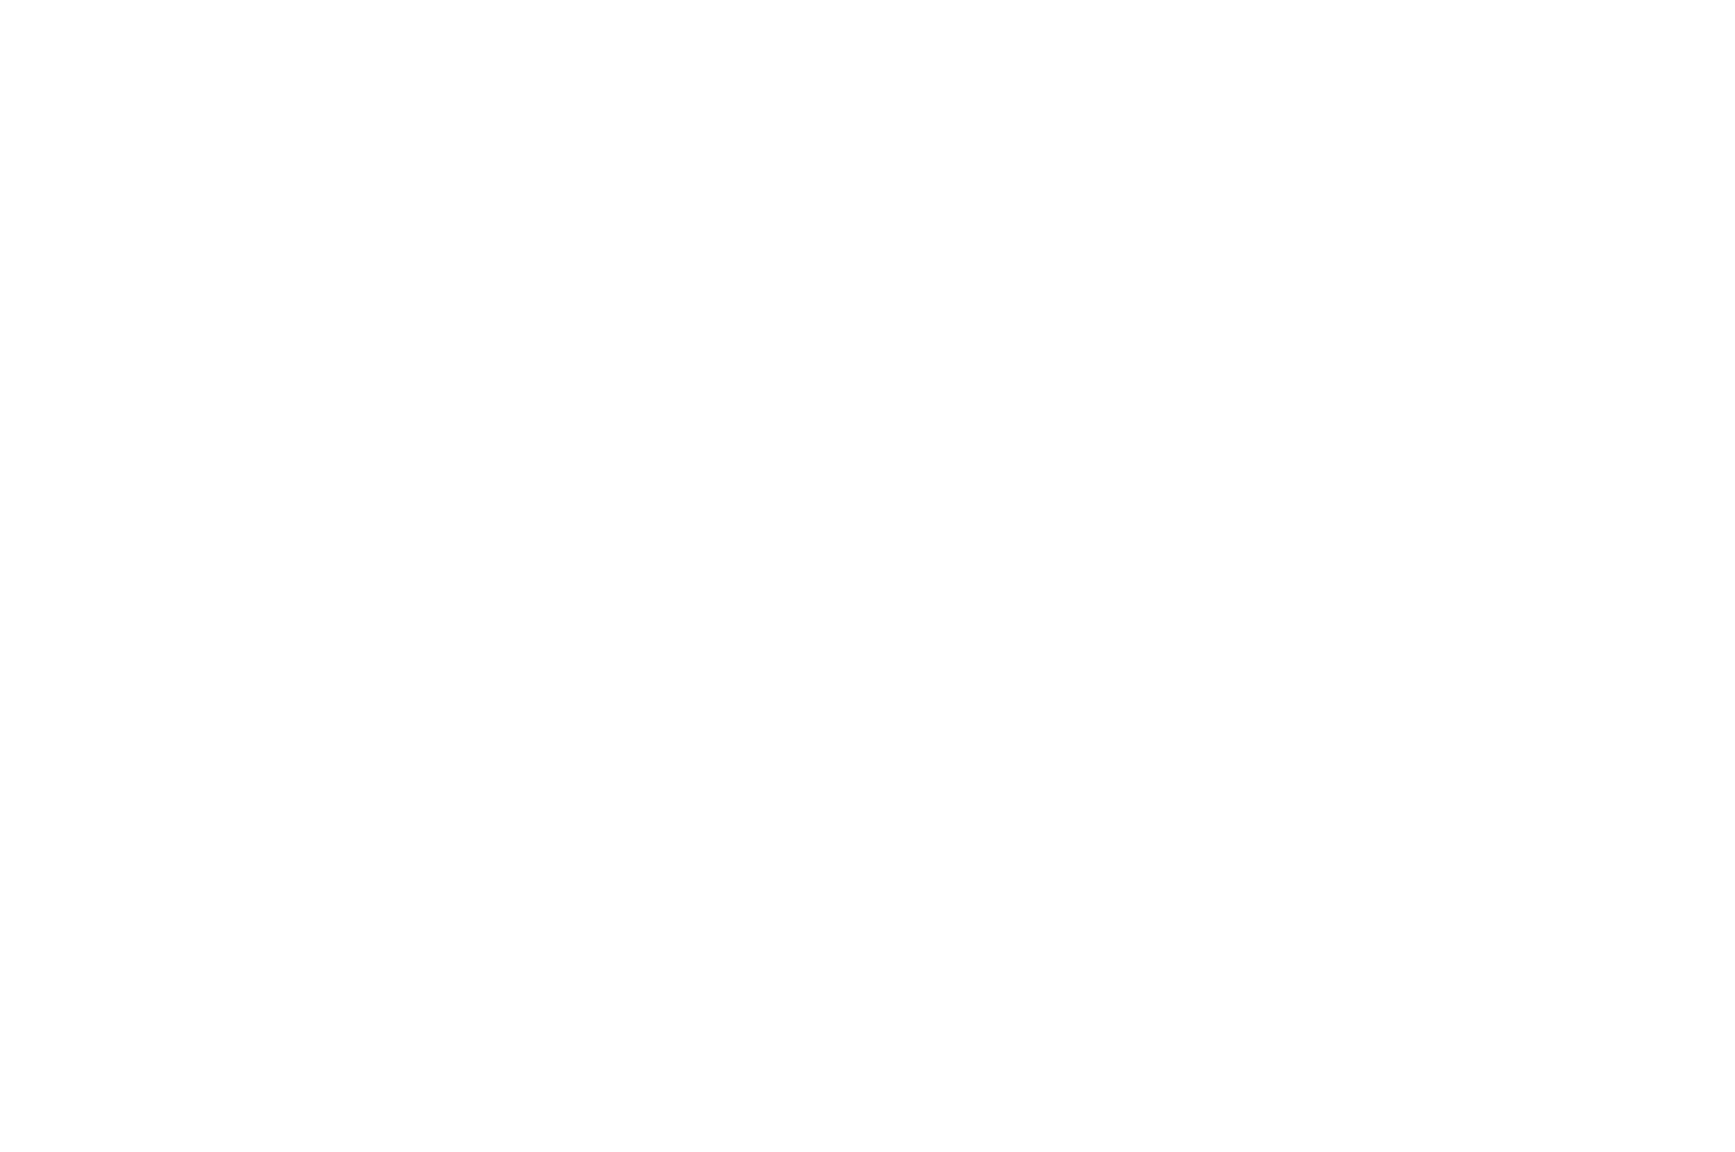 OFFICIAL SELECTION - Omaha Film Festival - 2012 (2).png